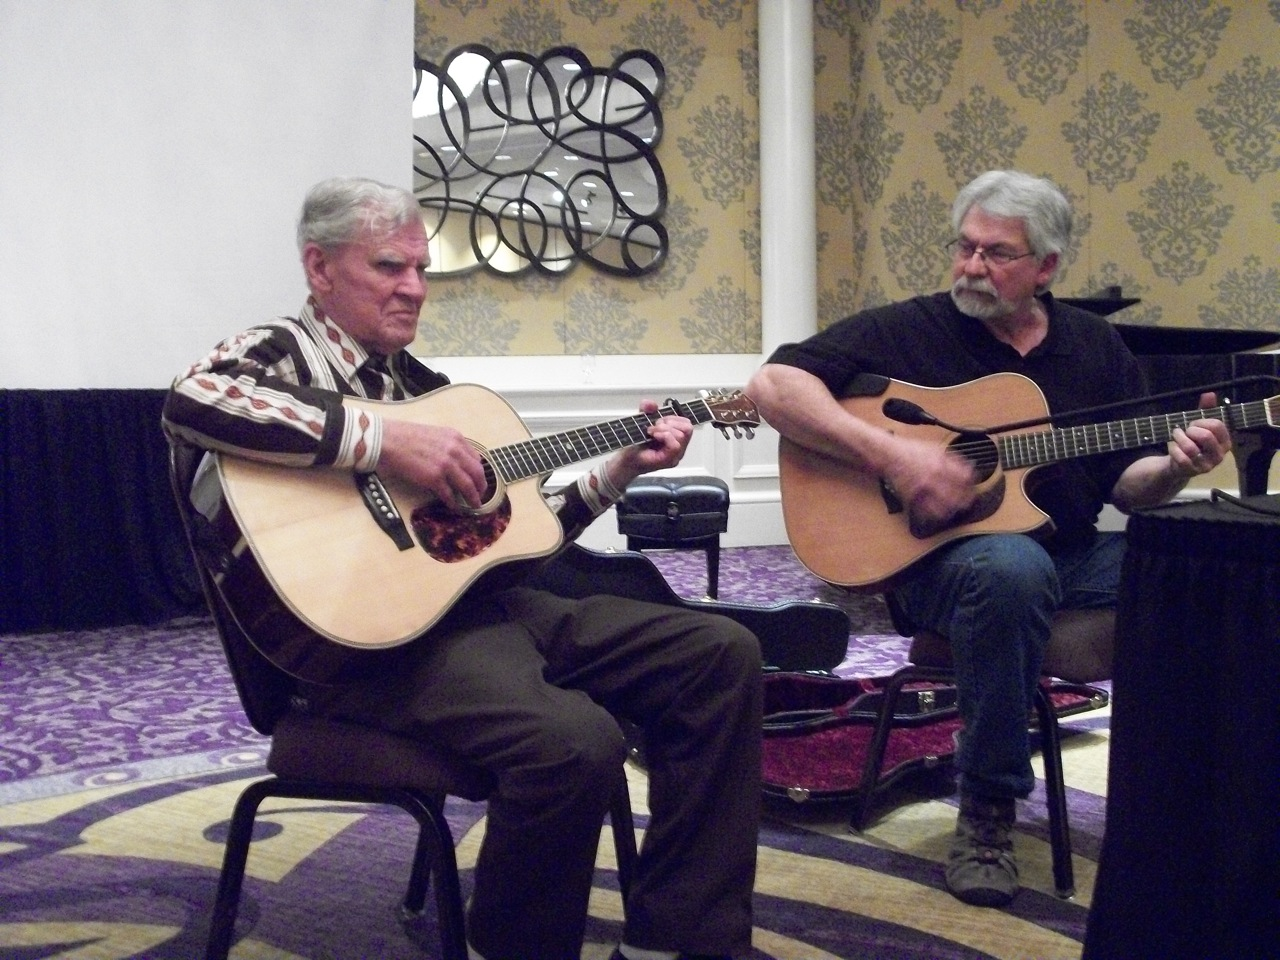 Doc Watson performs at SAM conference. Photo courtesy of Gregory N. Reish.